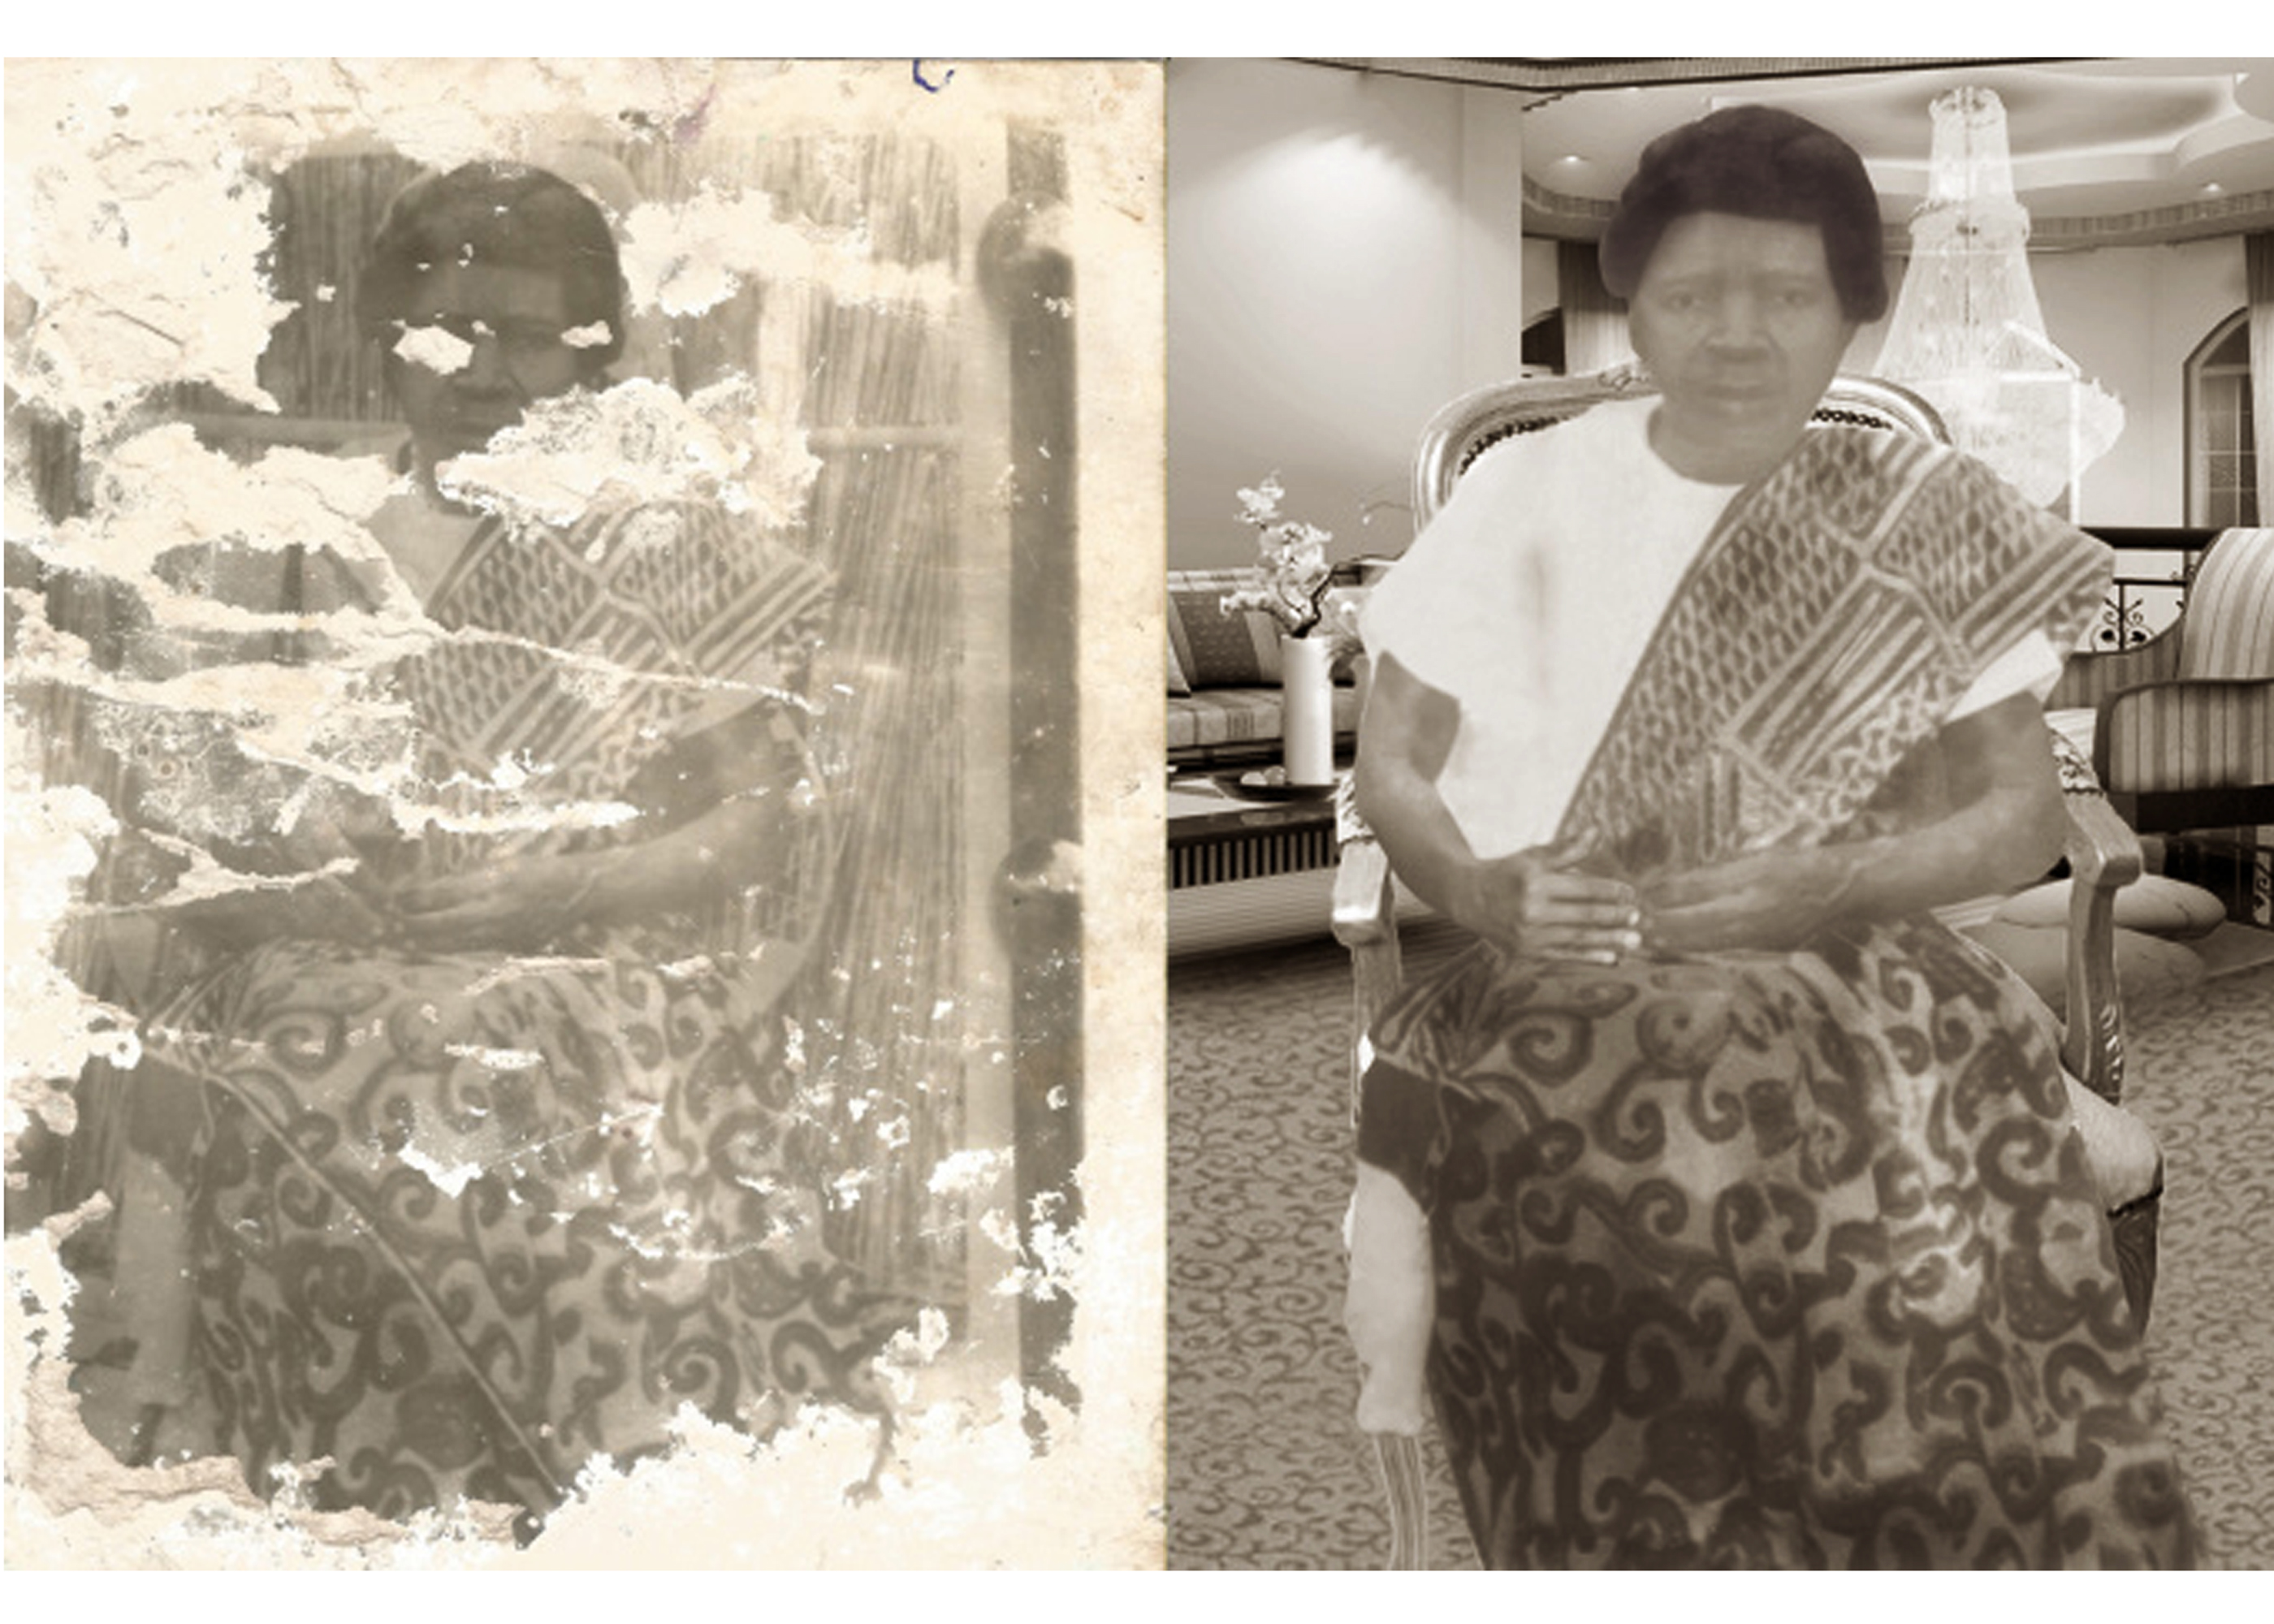 restore old damage photo, remove any stain, blemish on any photo